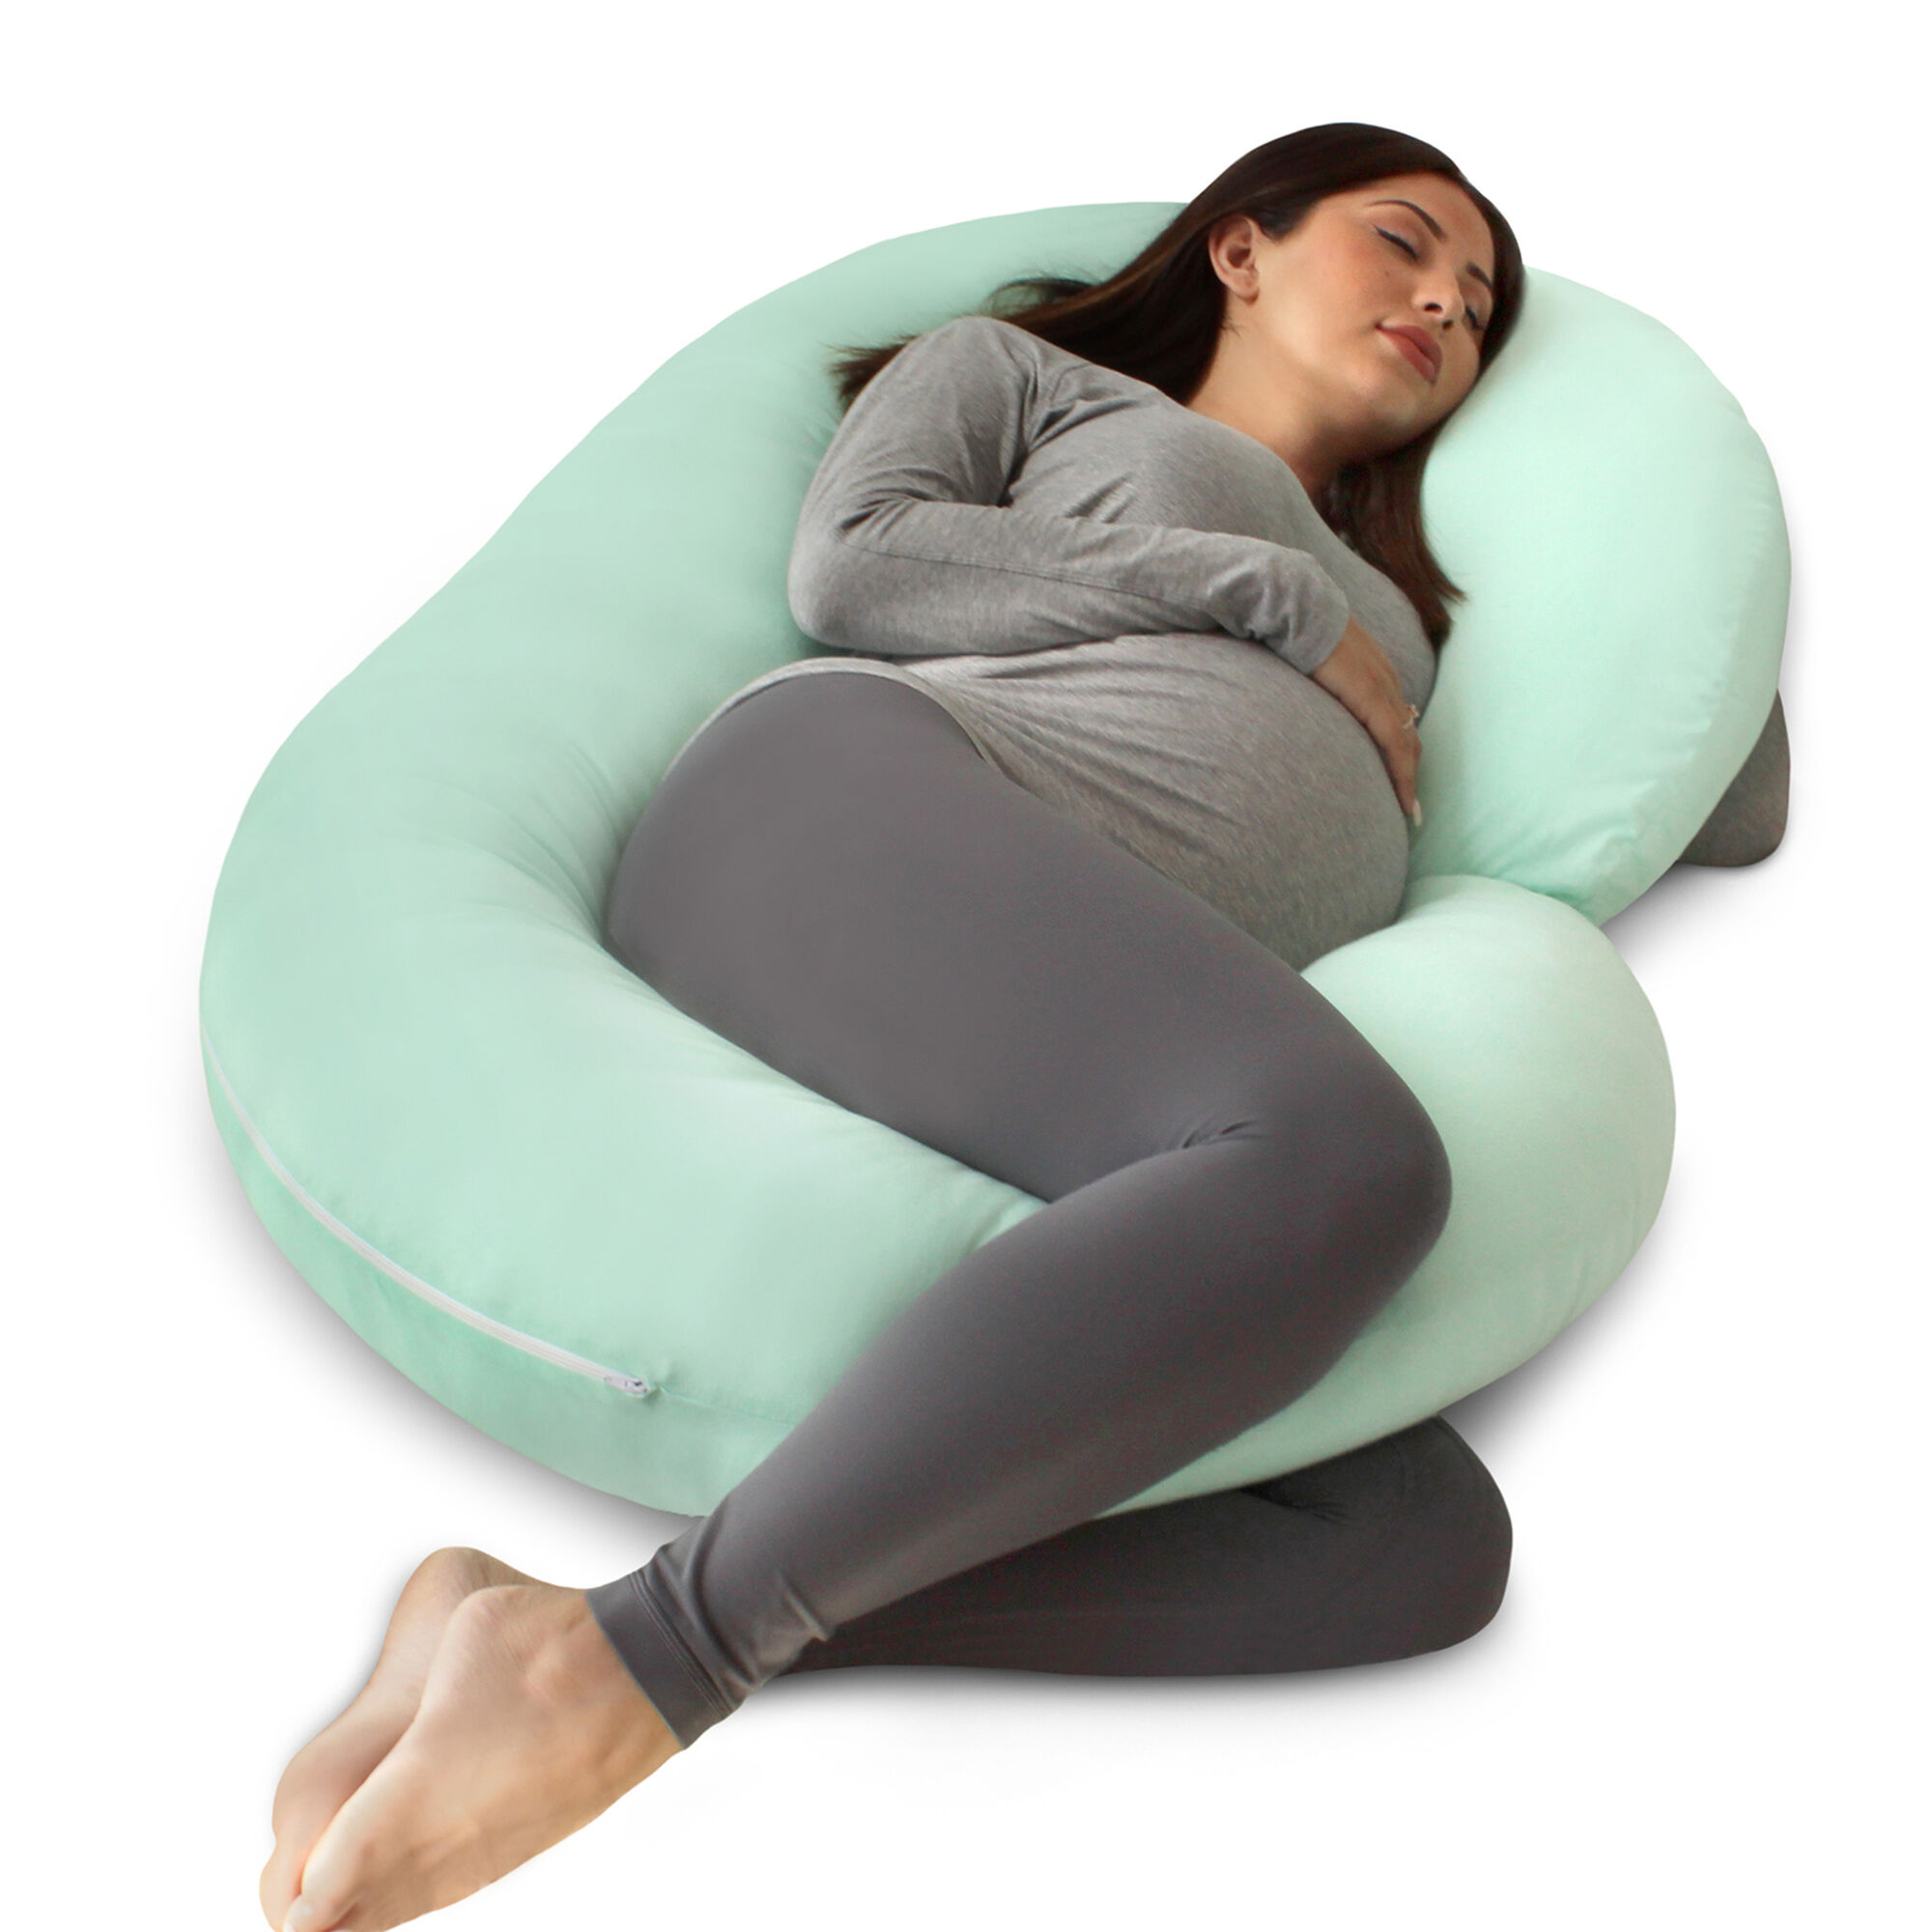 PHARMEDOC C-SHAPE PREGNANCY PILLOW